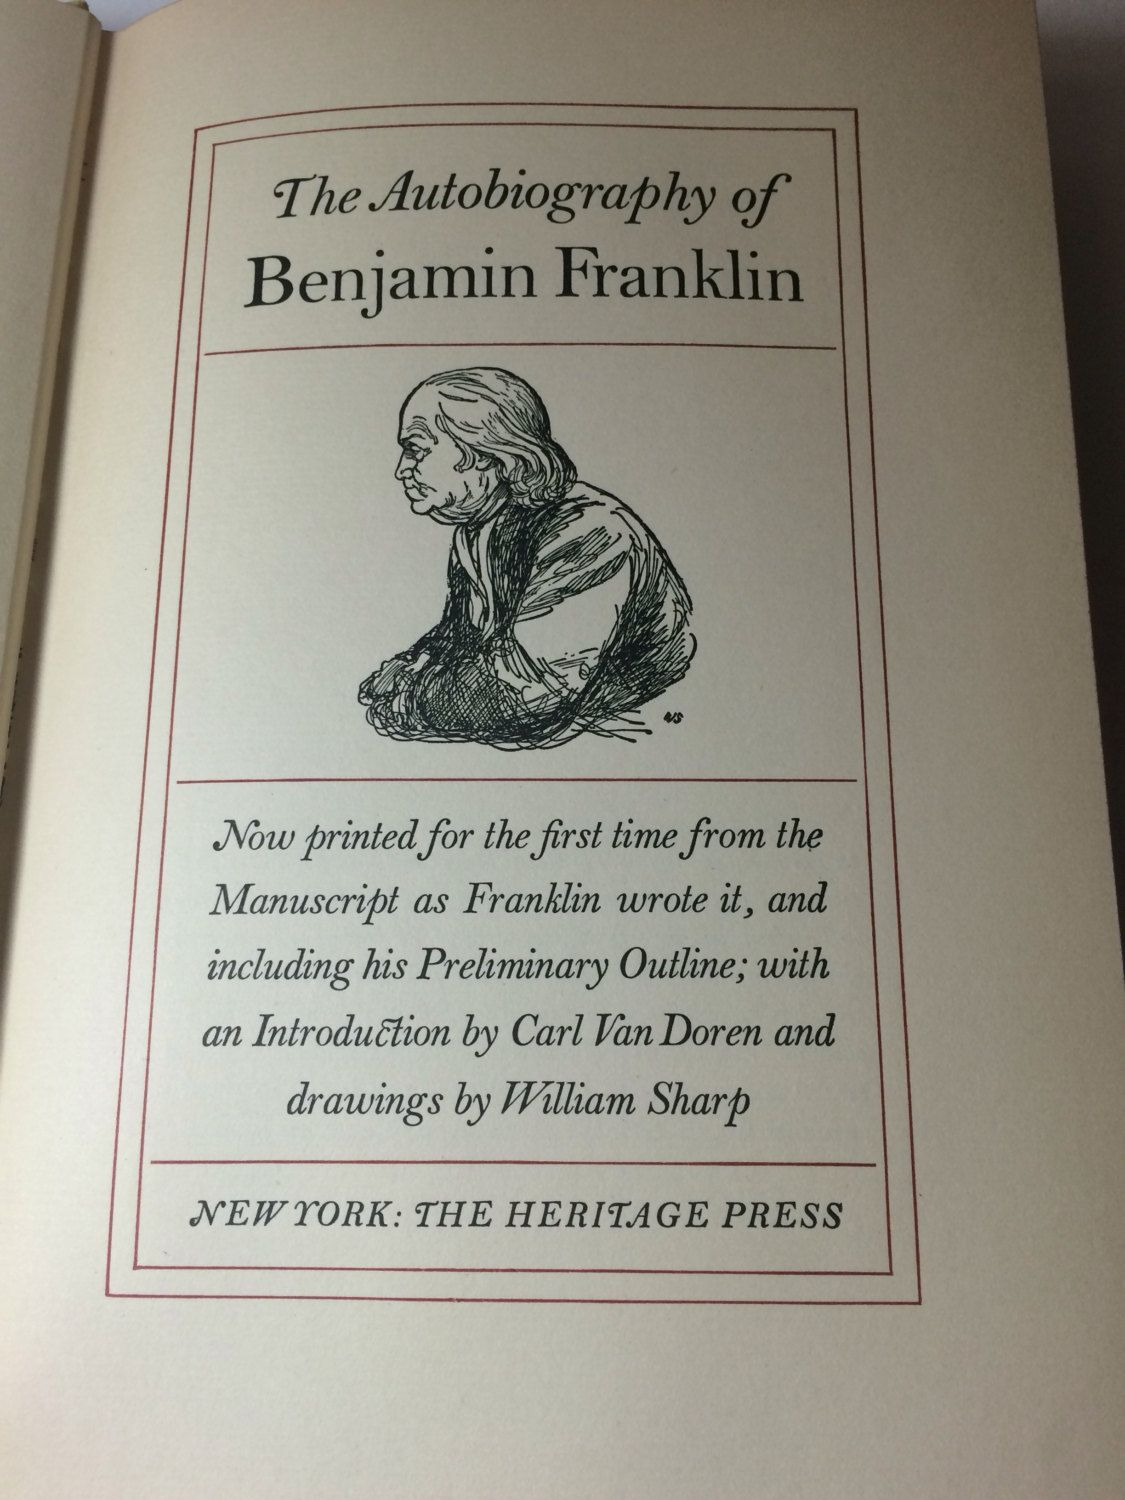 a biography of the benjamin franklin and a printers epitaph The portable benjamin franklin benjamin franklin (1706-1790) was the first american to achieve international celebrity from the colonial period of his initial fame through to the twenty-first century, he has been regarded both at home and abroad as the one person who most clearly combines the many facets of the american character.